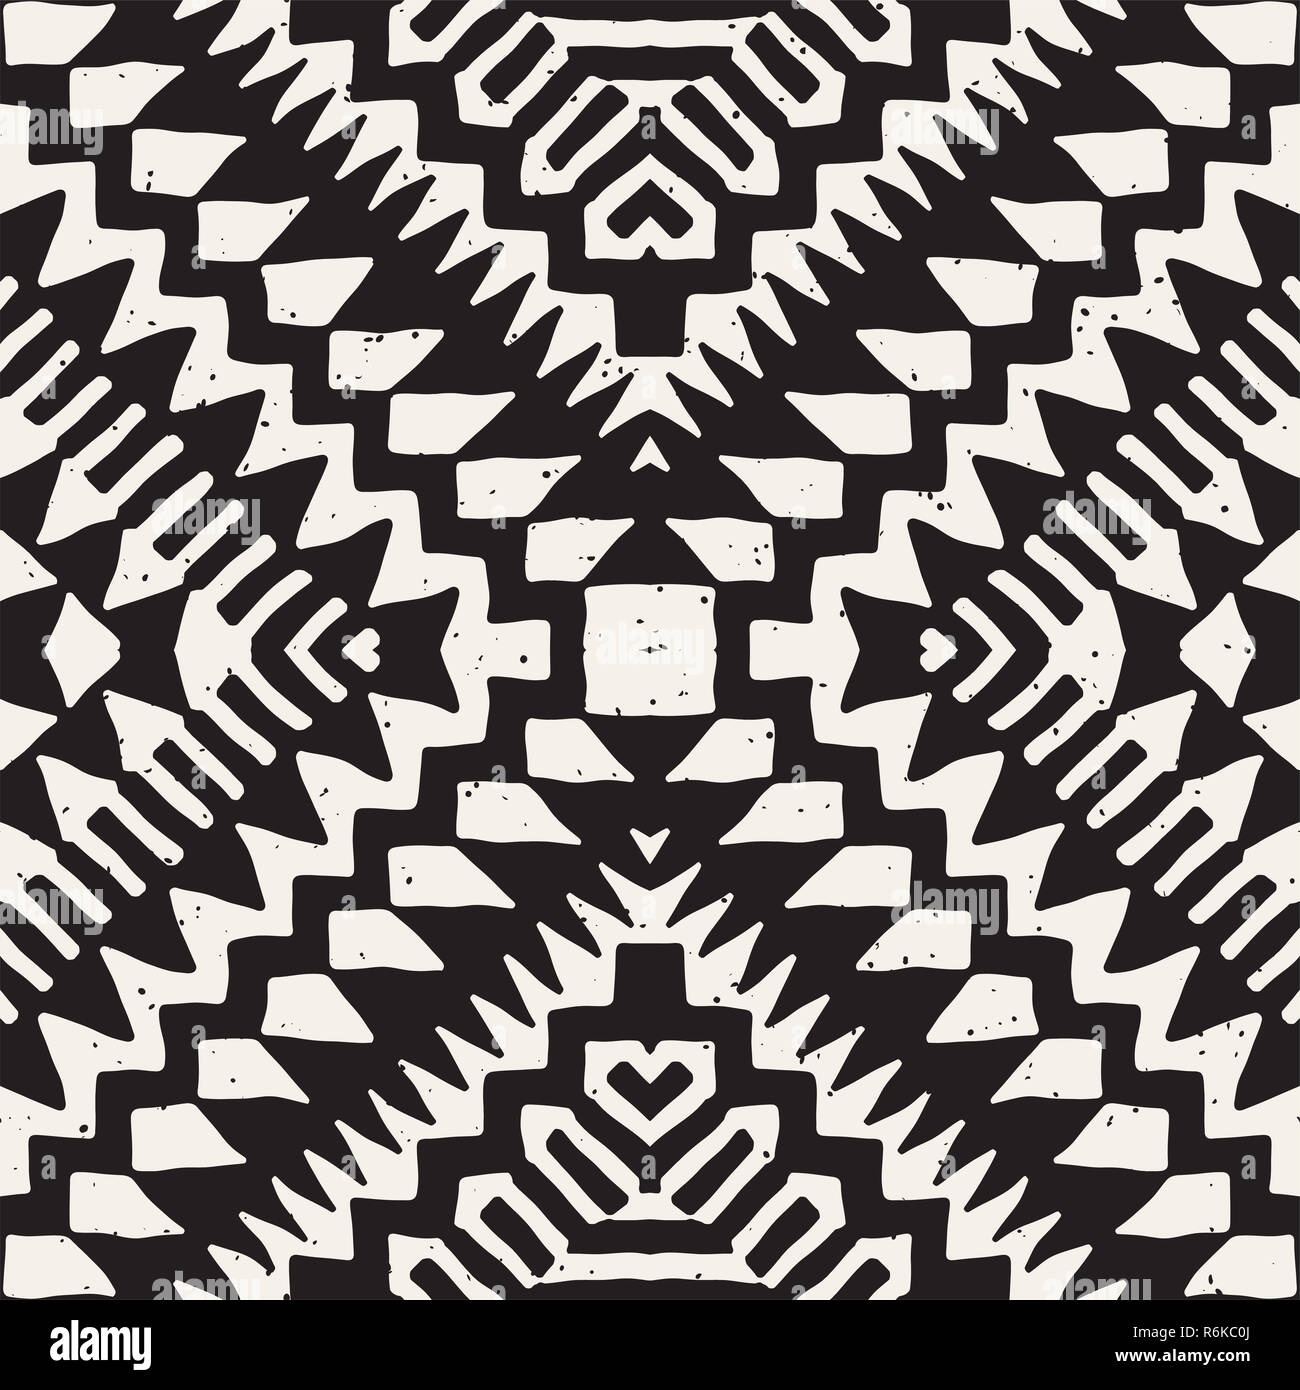 64528bcabce3c Seamless ethnic and tribal pattern. Hand drawn ornamental stripes. Black  and white print. Vector geometric background.